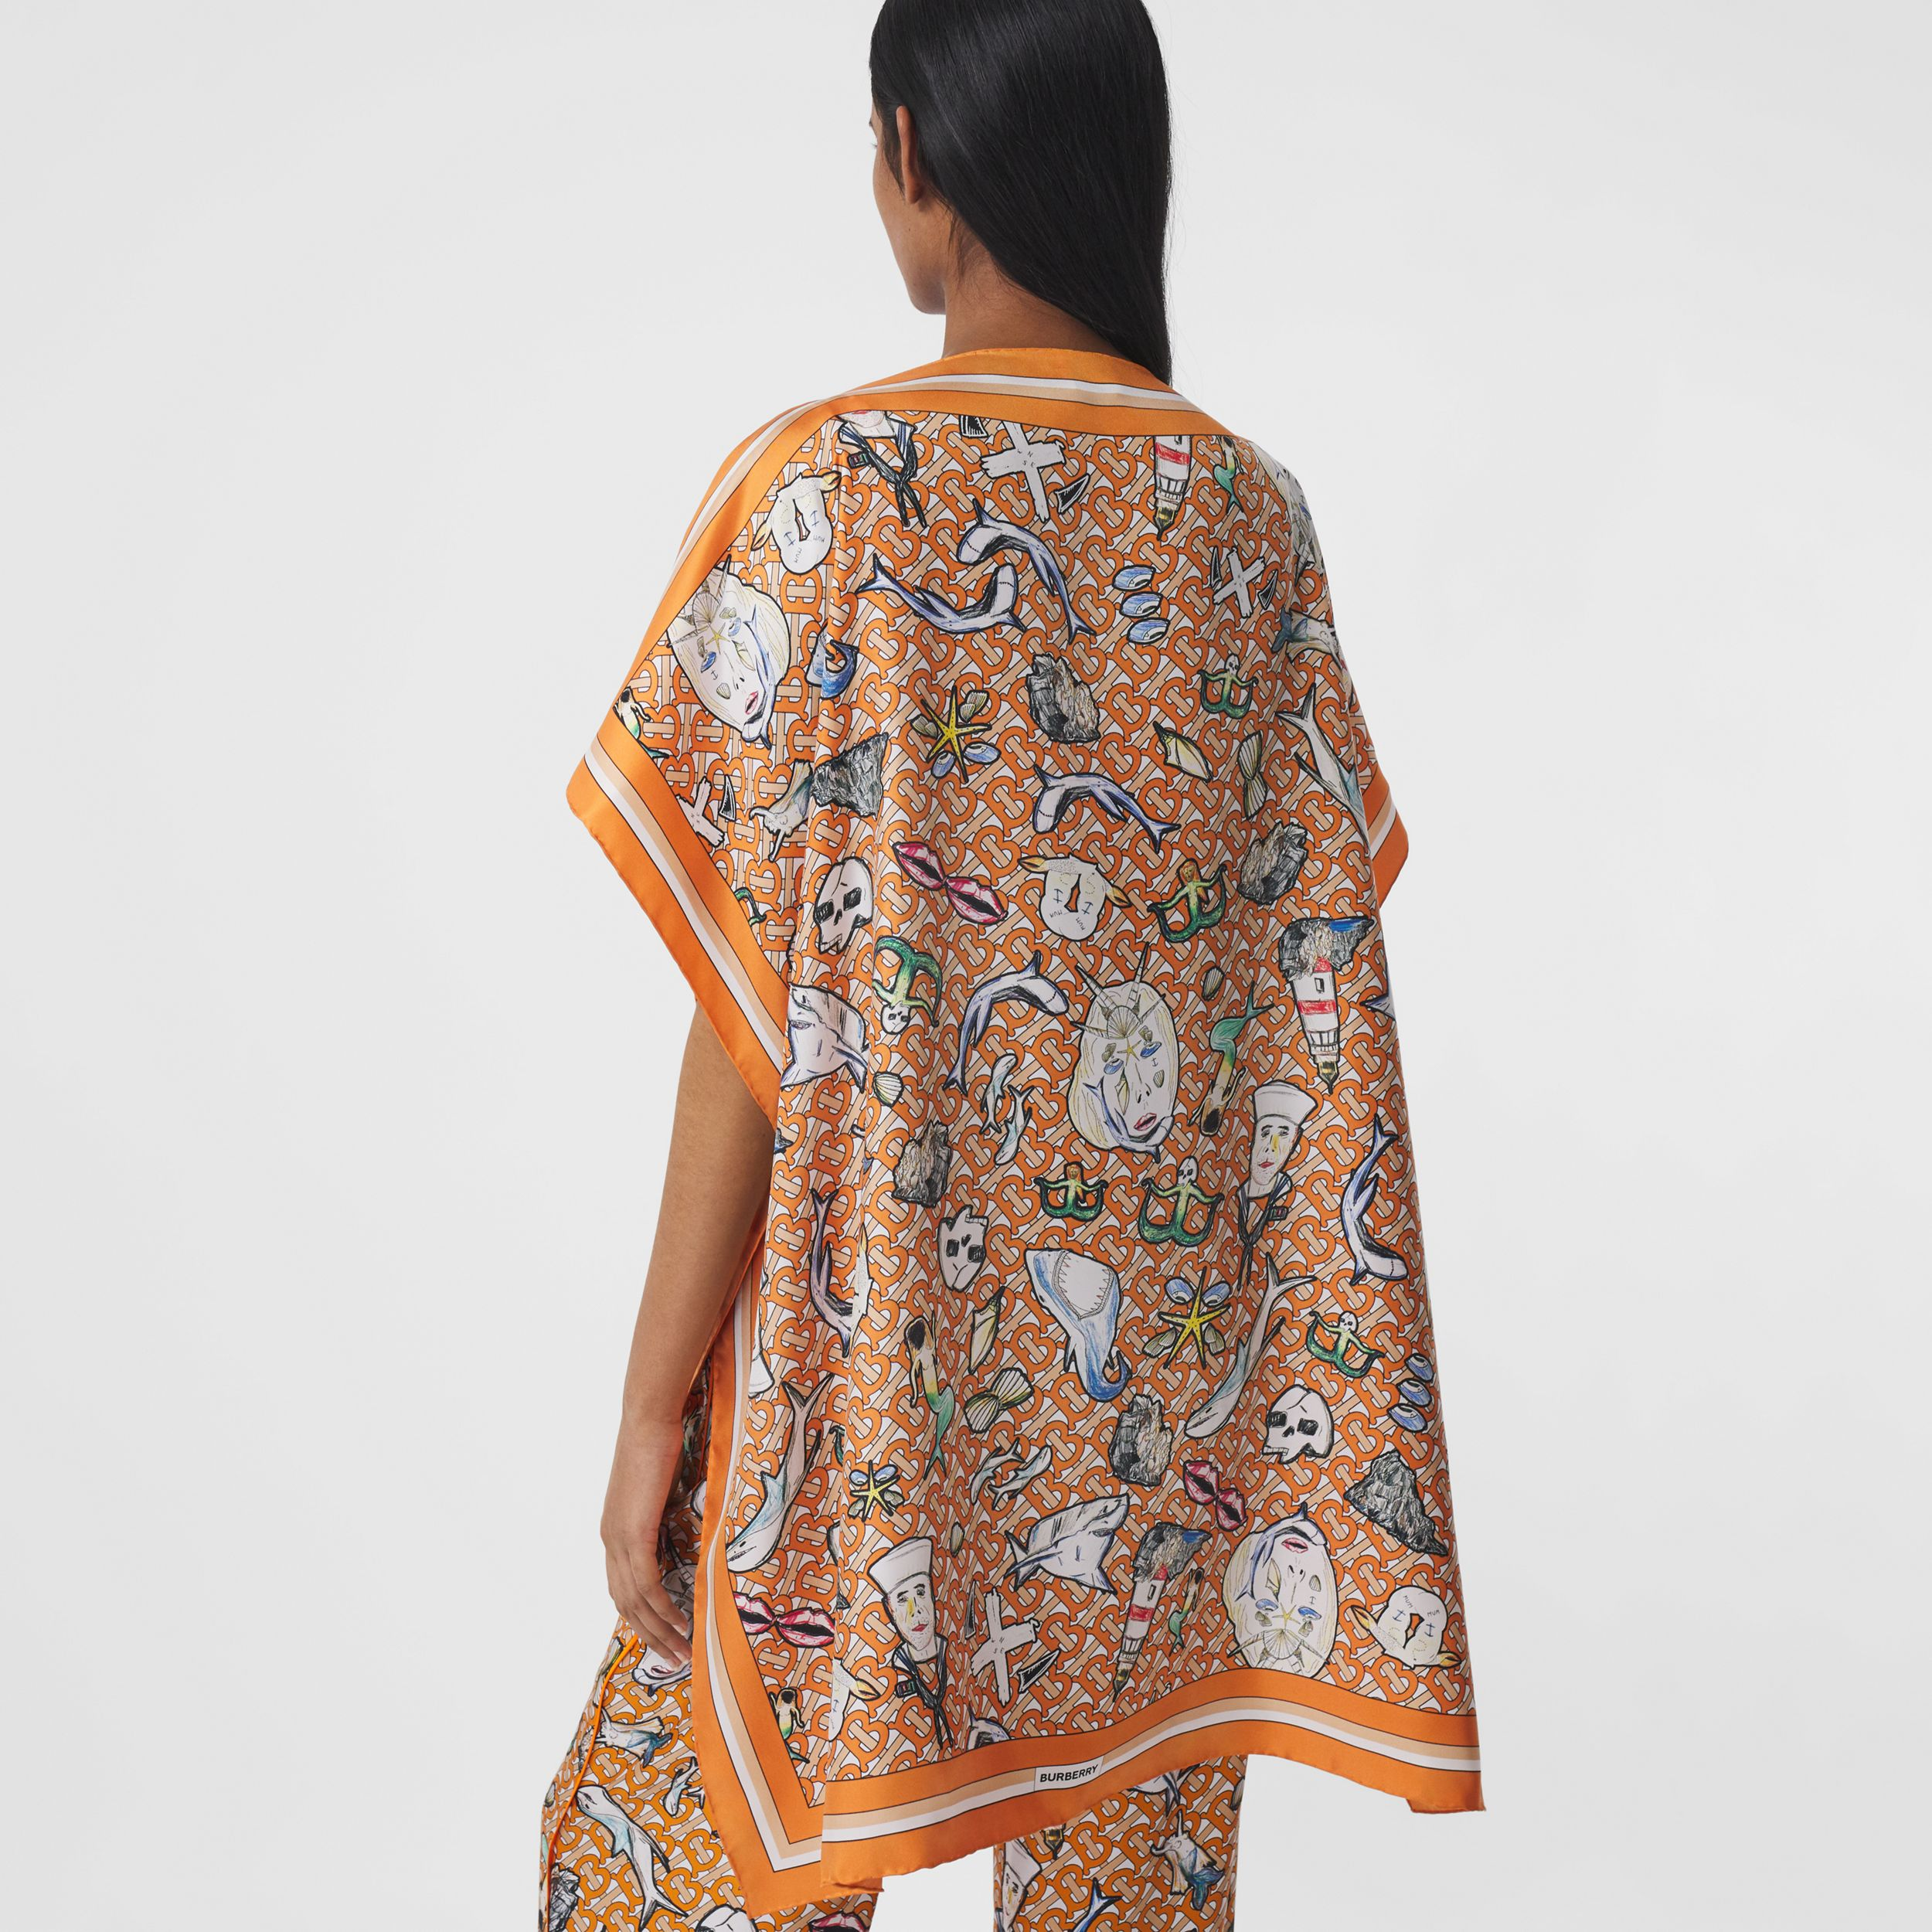 Monogram and Marine Print Silk Twill Cape in Deep Orange - Women | Burberry United States - 3